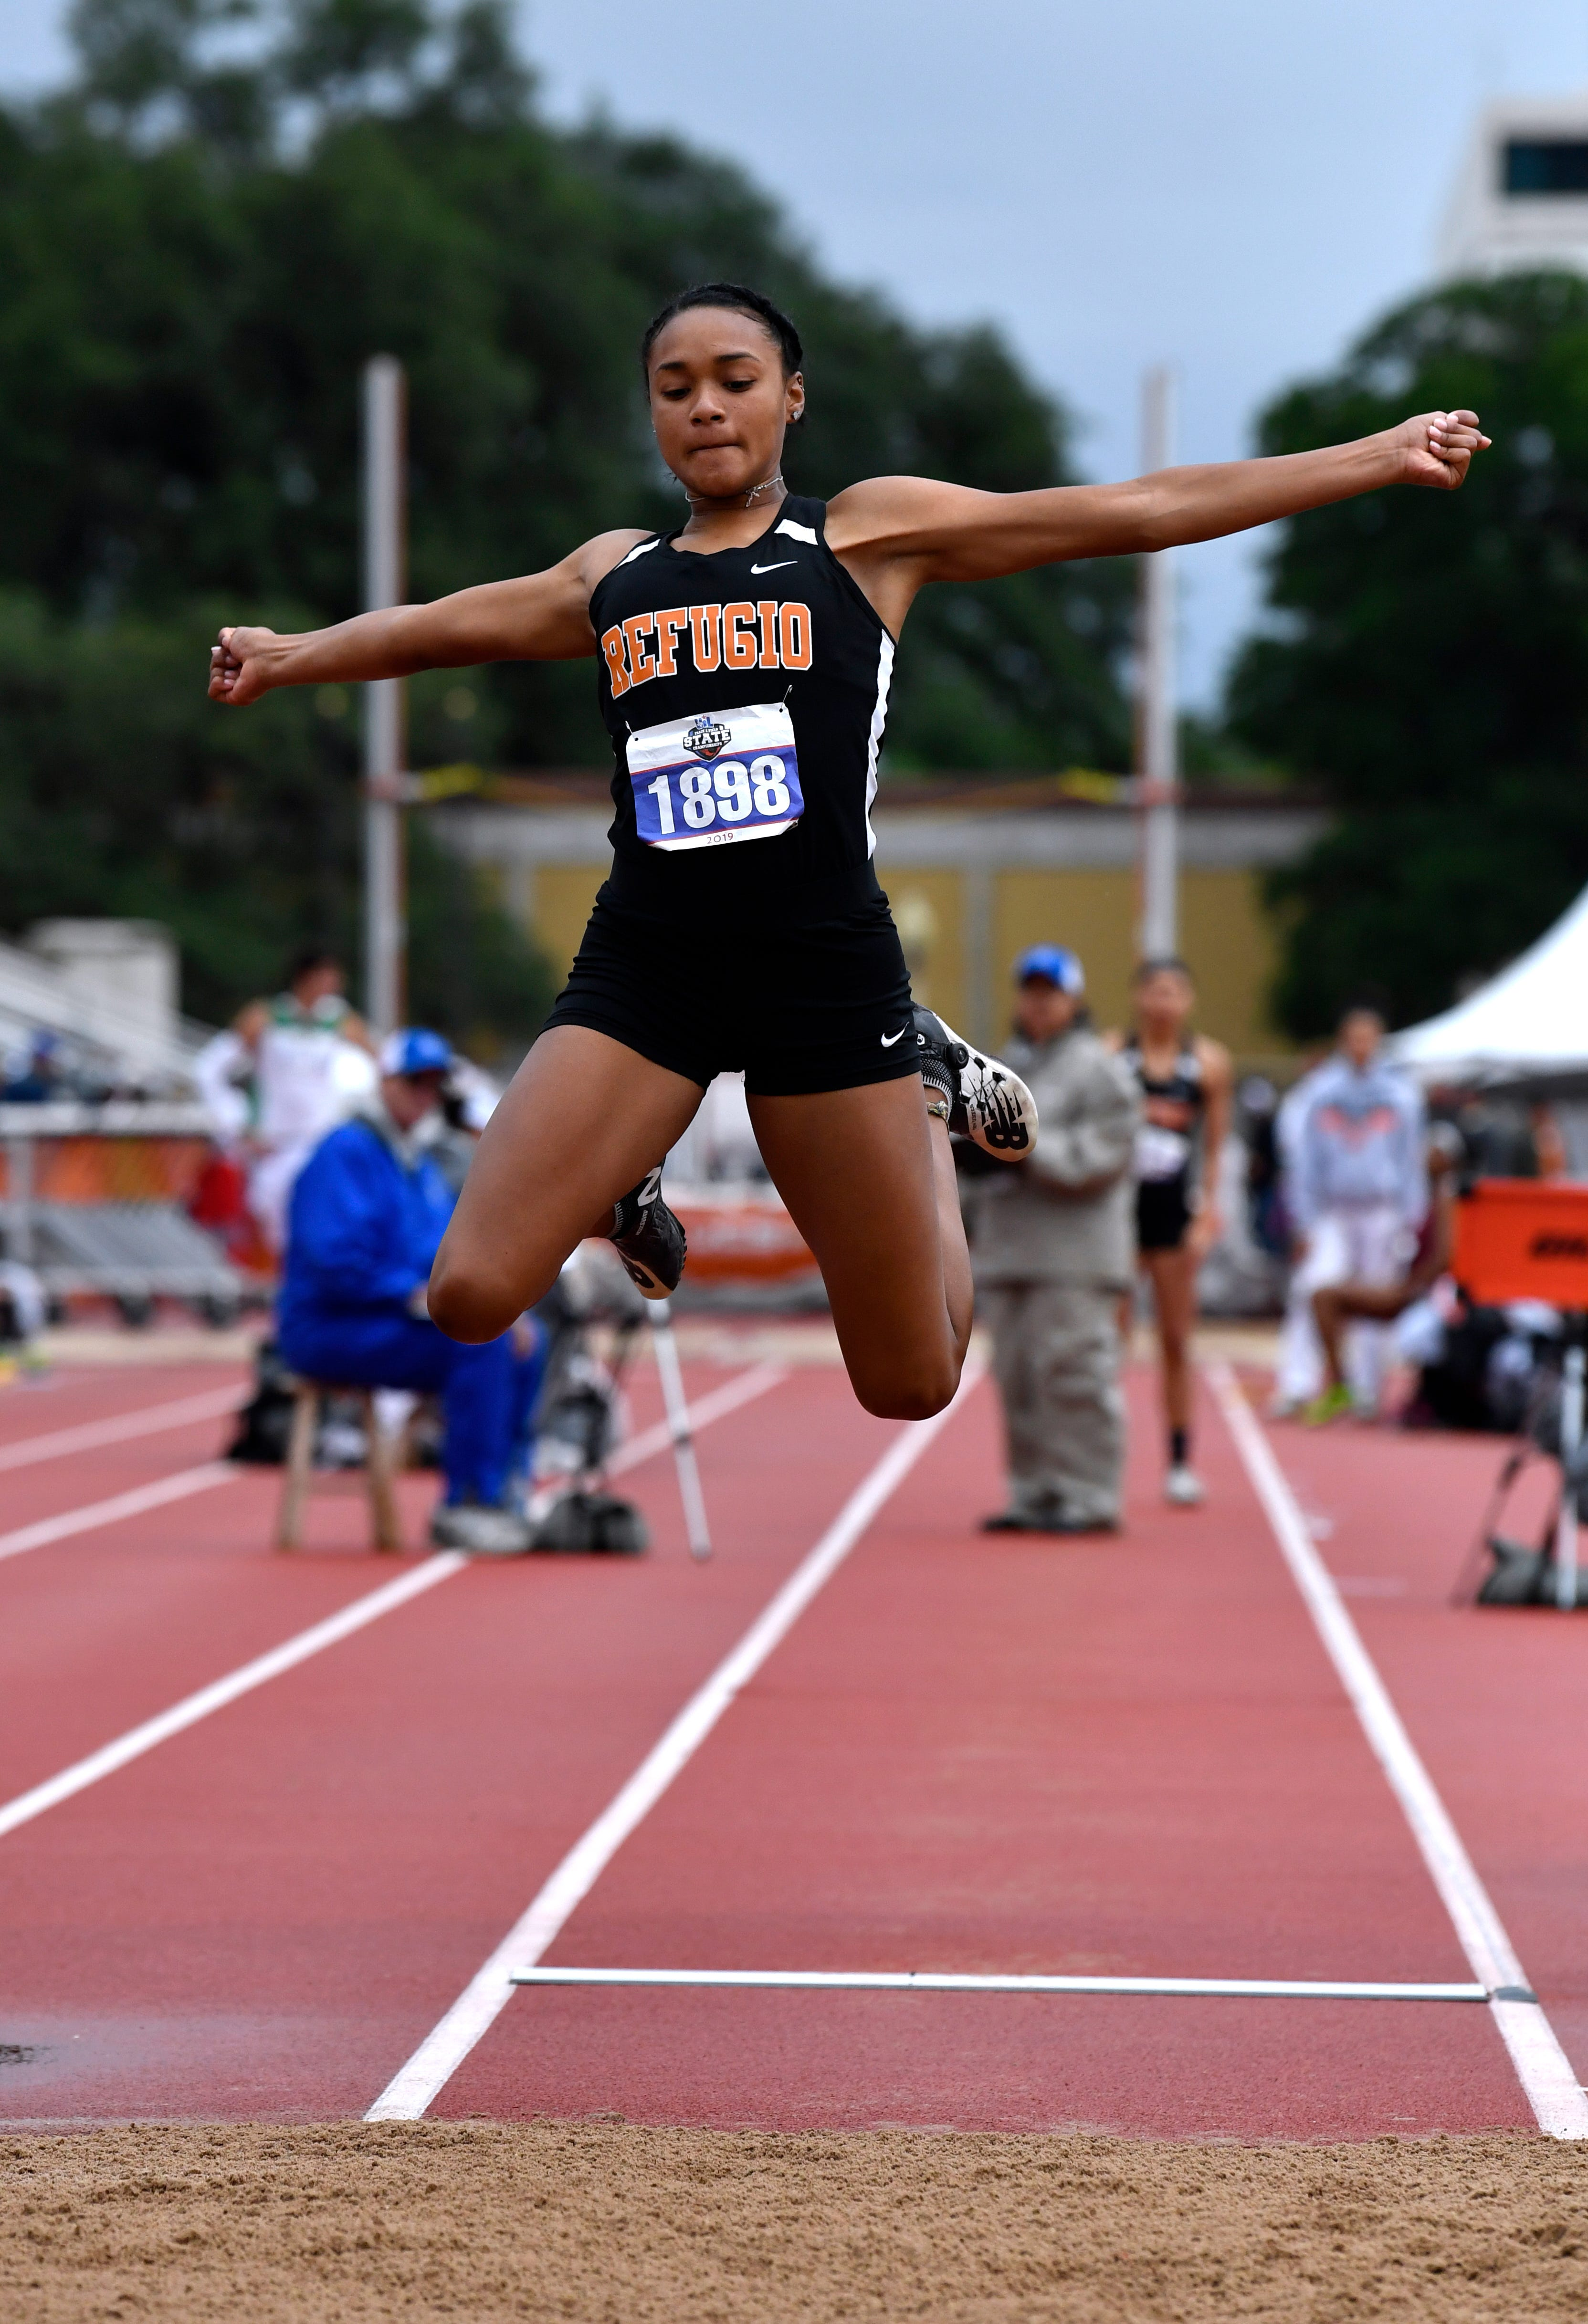 Refugio's Alexa Valenzuela flies through the air during the Class 2A Girls Long Jump at the UIL State Track & Field Championships in Austin Saturday May 11, 2019.